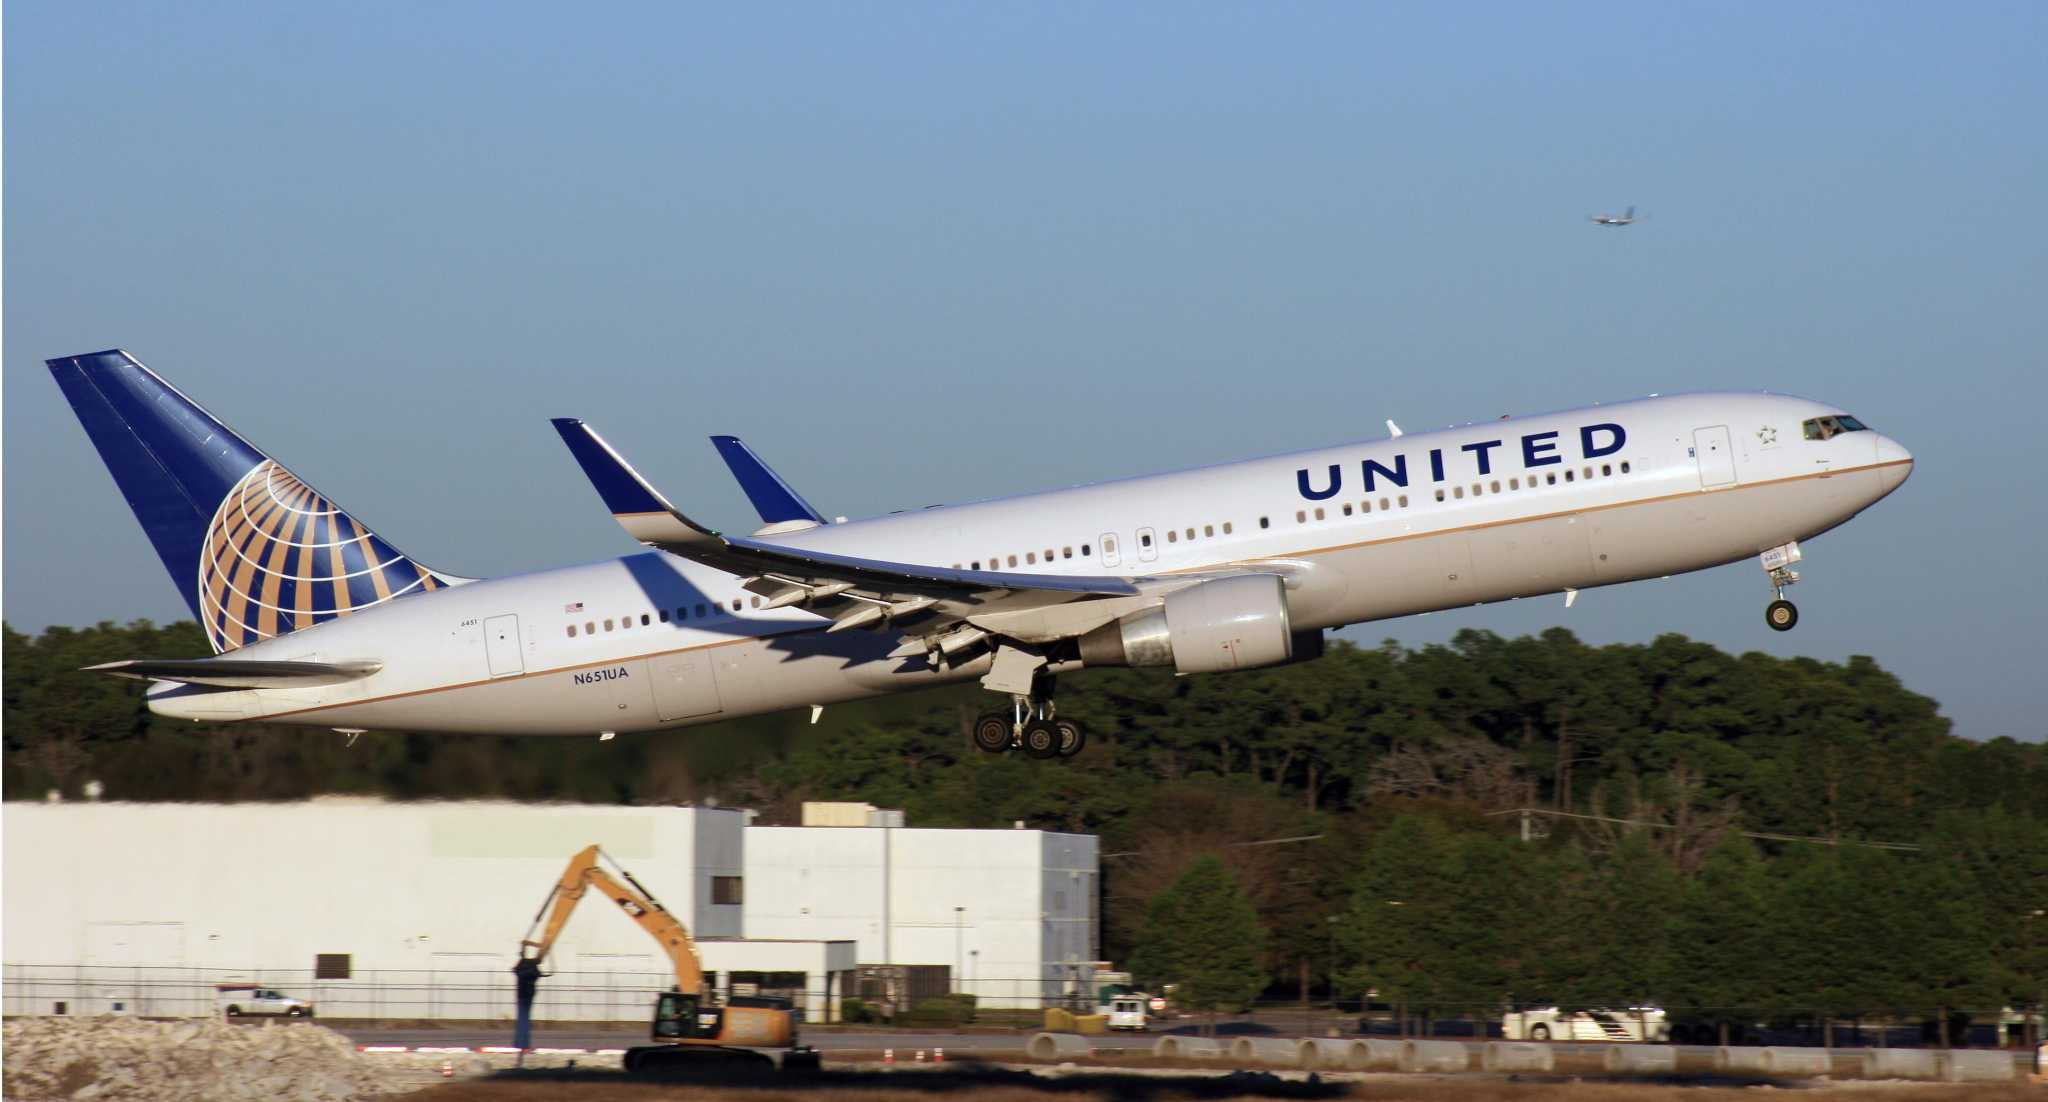 Houston-area airport workers, union to protest United Airlines, demand $15 an hour